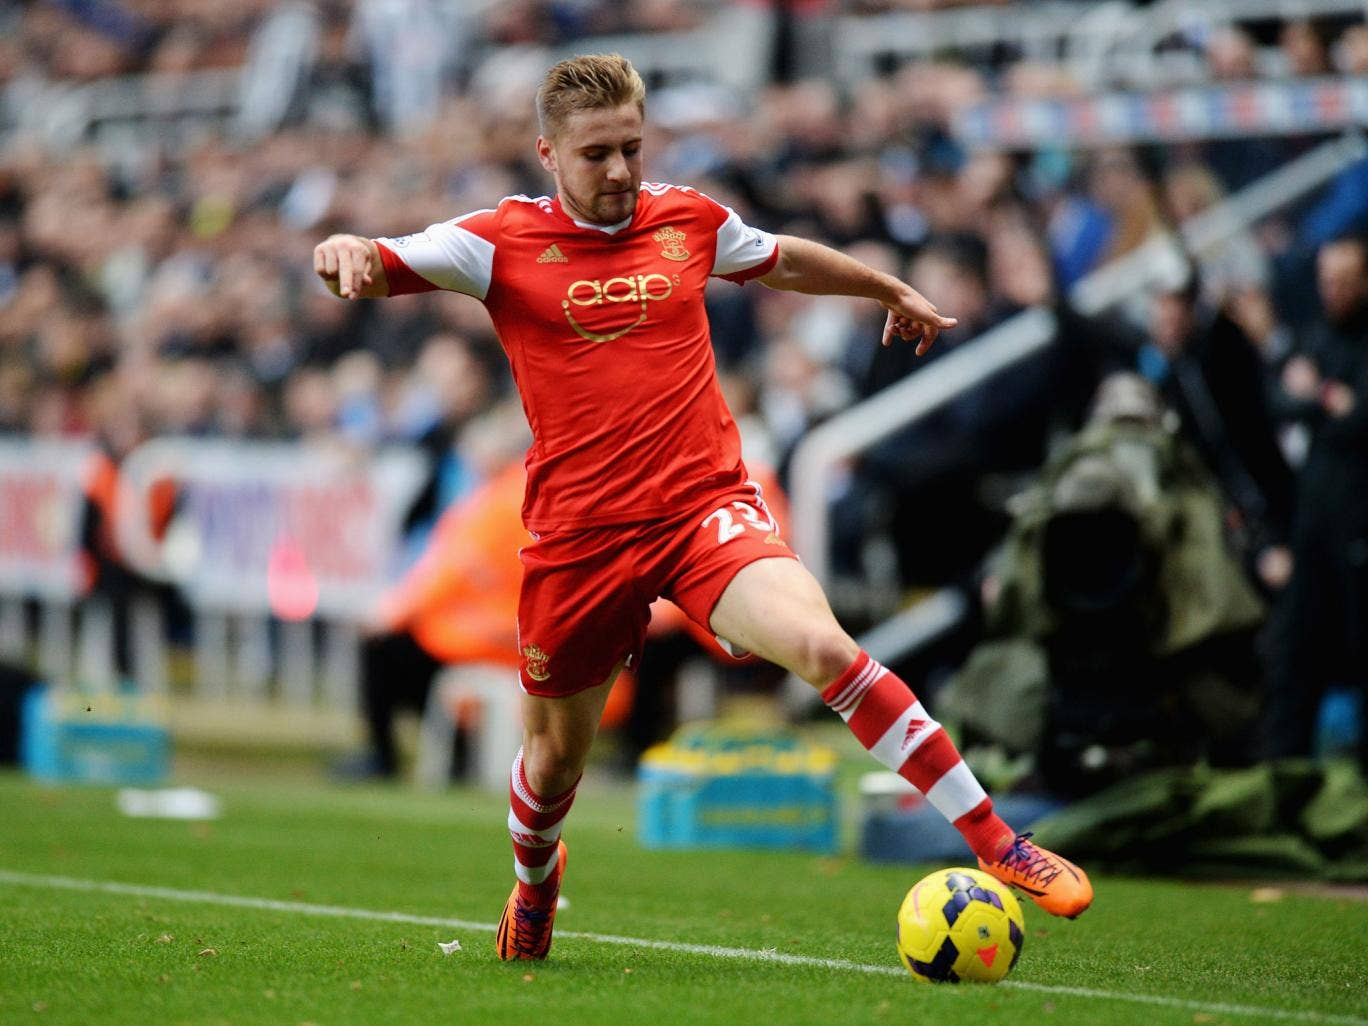 Luke Shaw, England's most talented young left-back, has to be retained